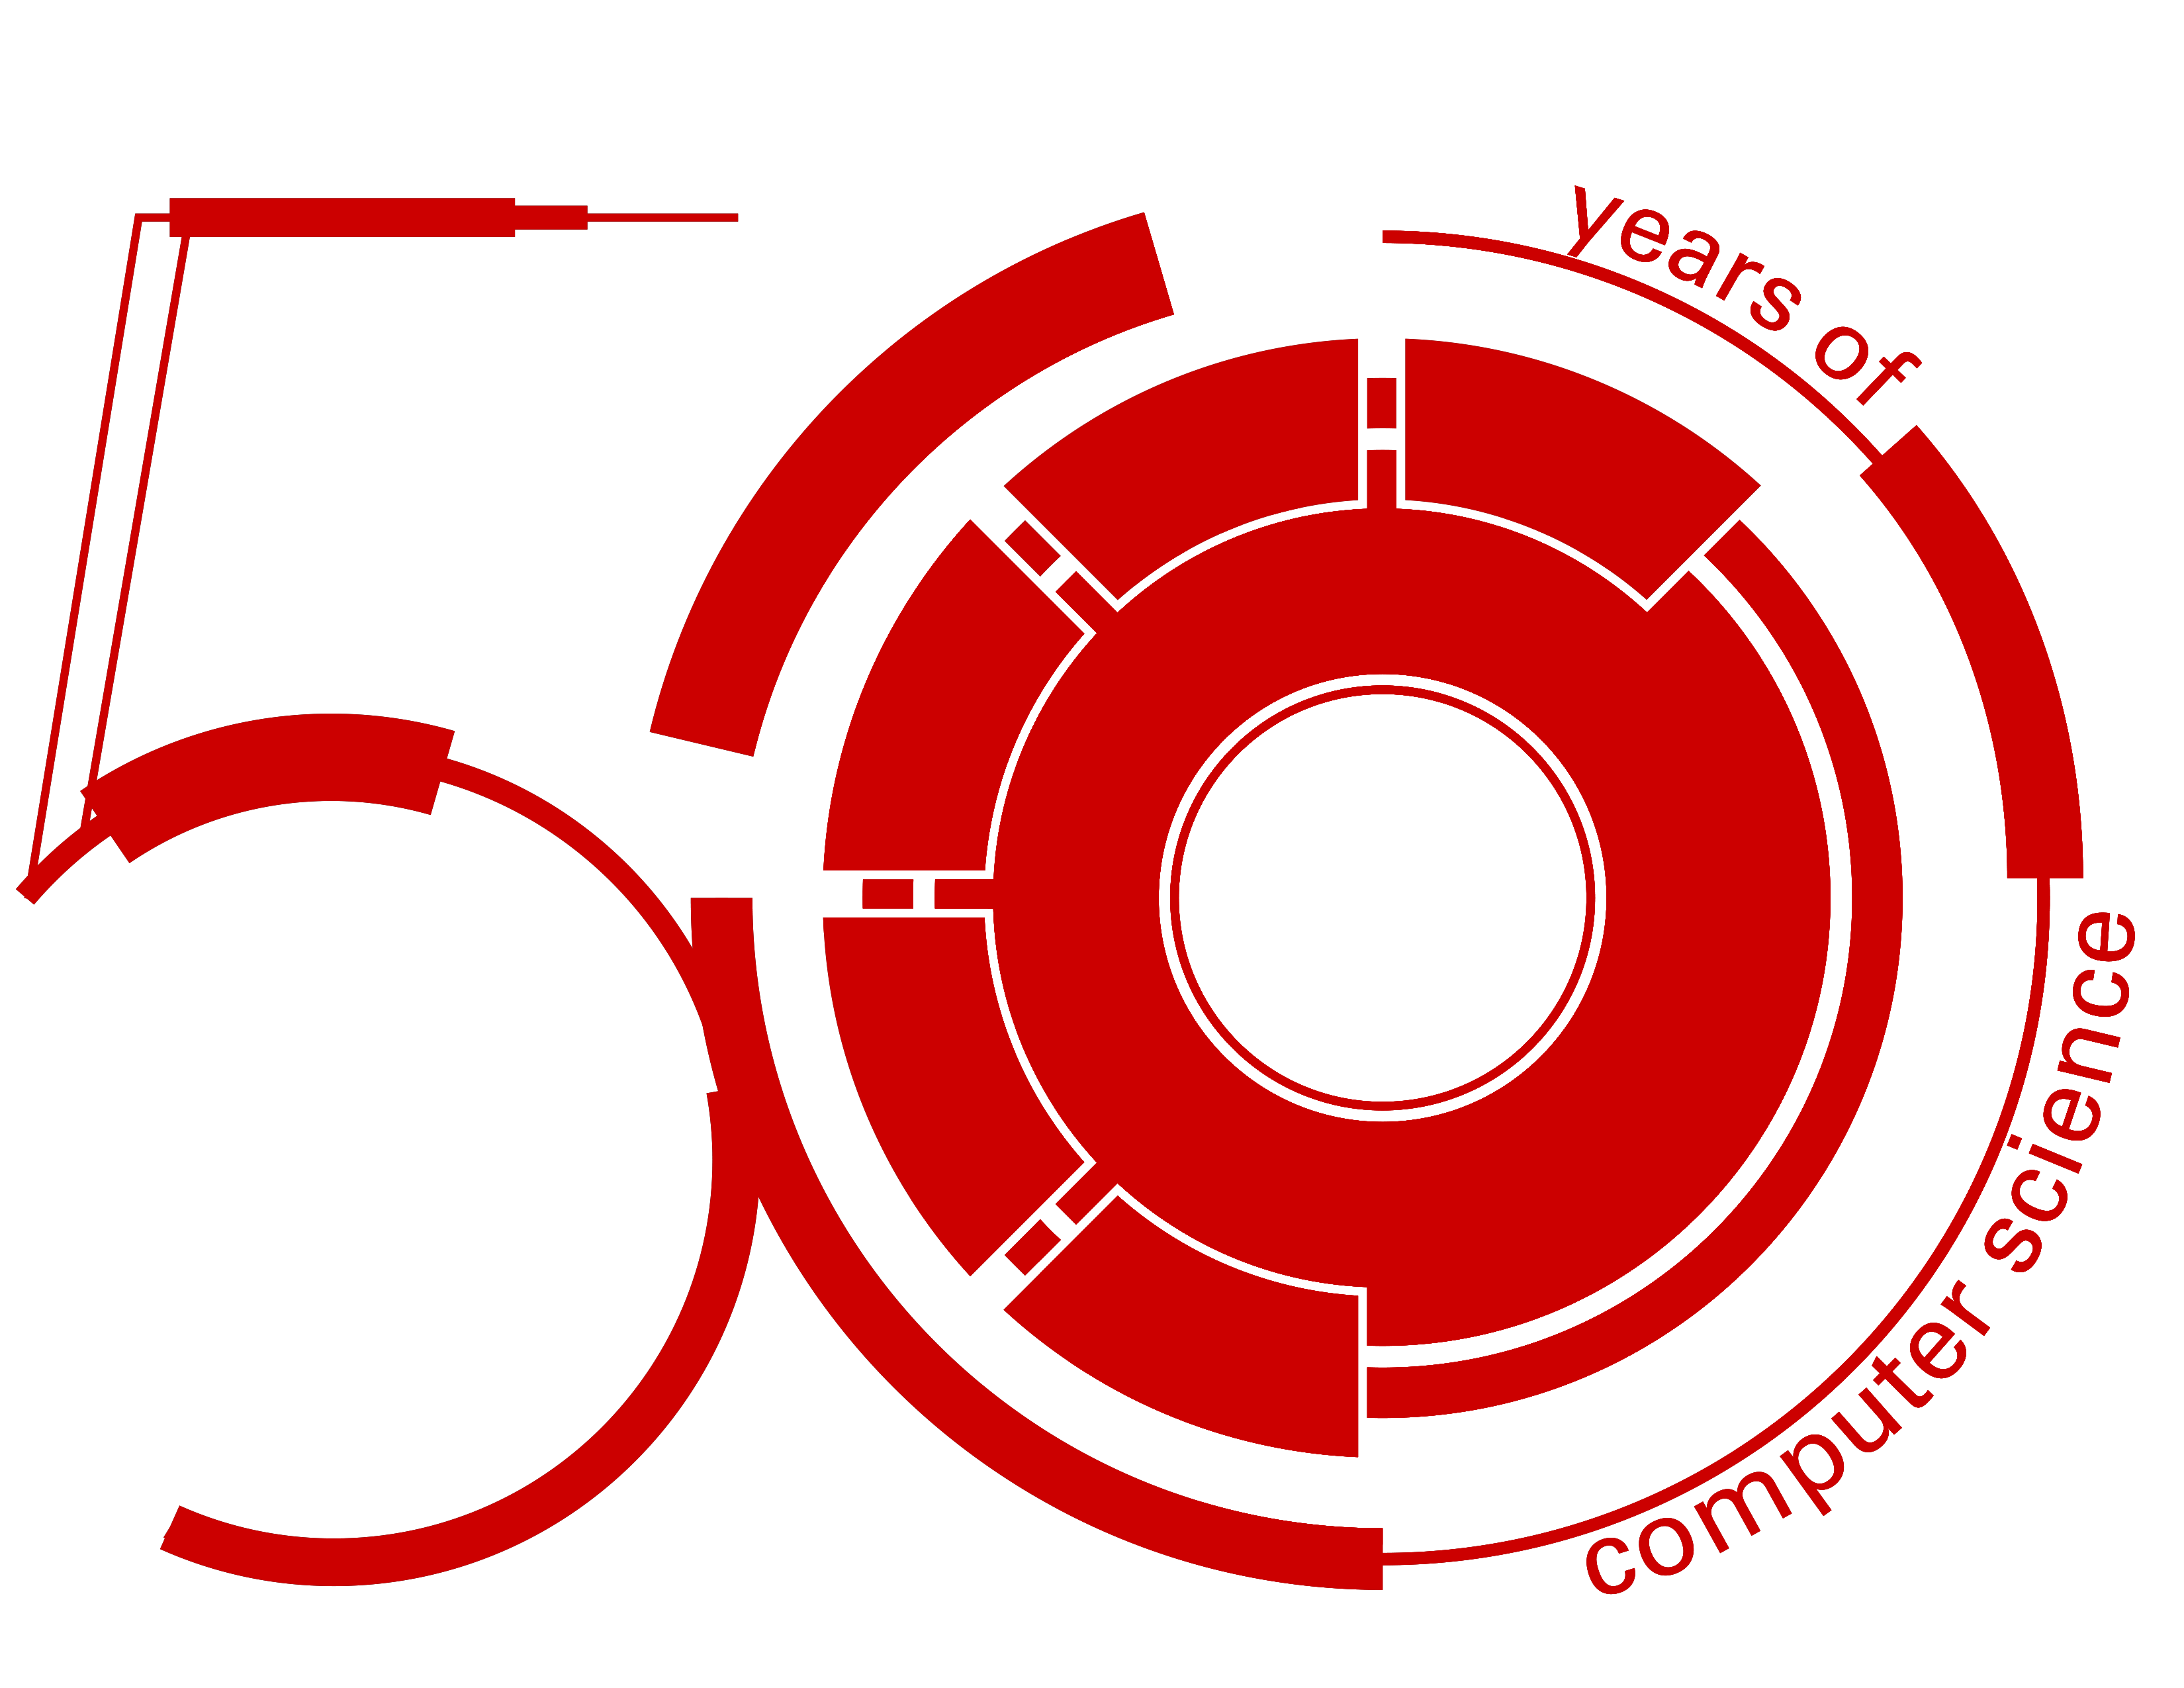 50th Year Celebration